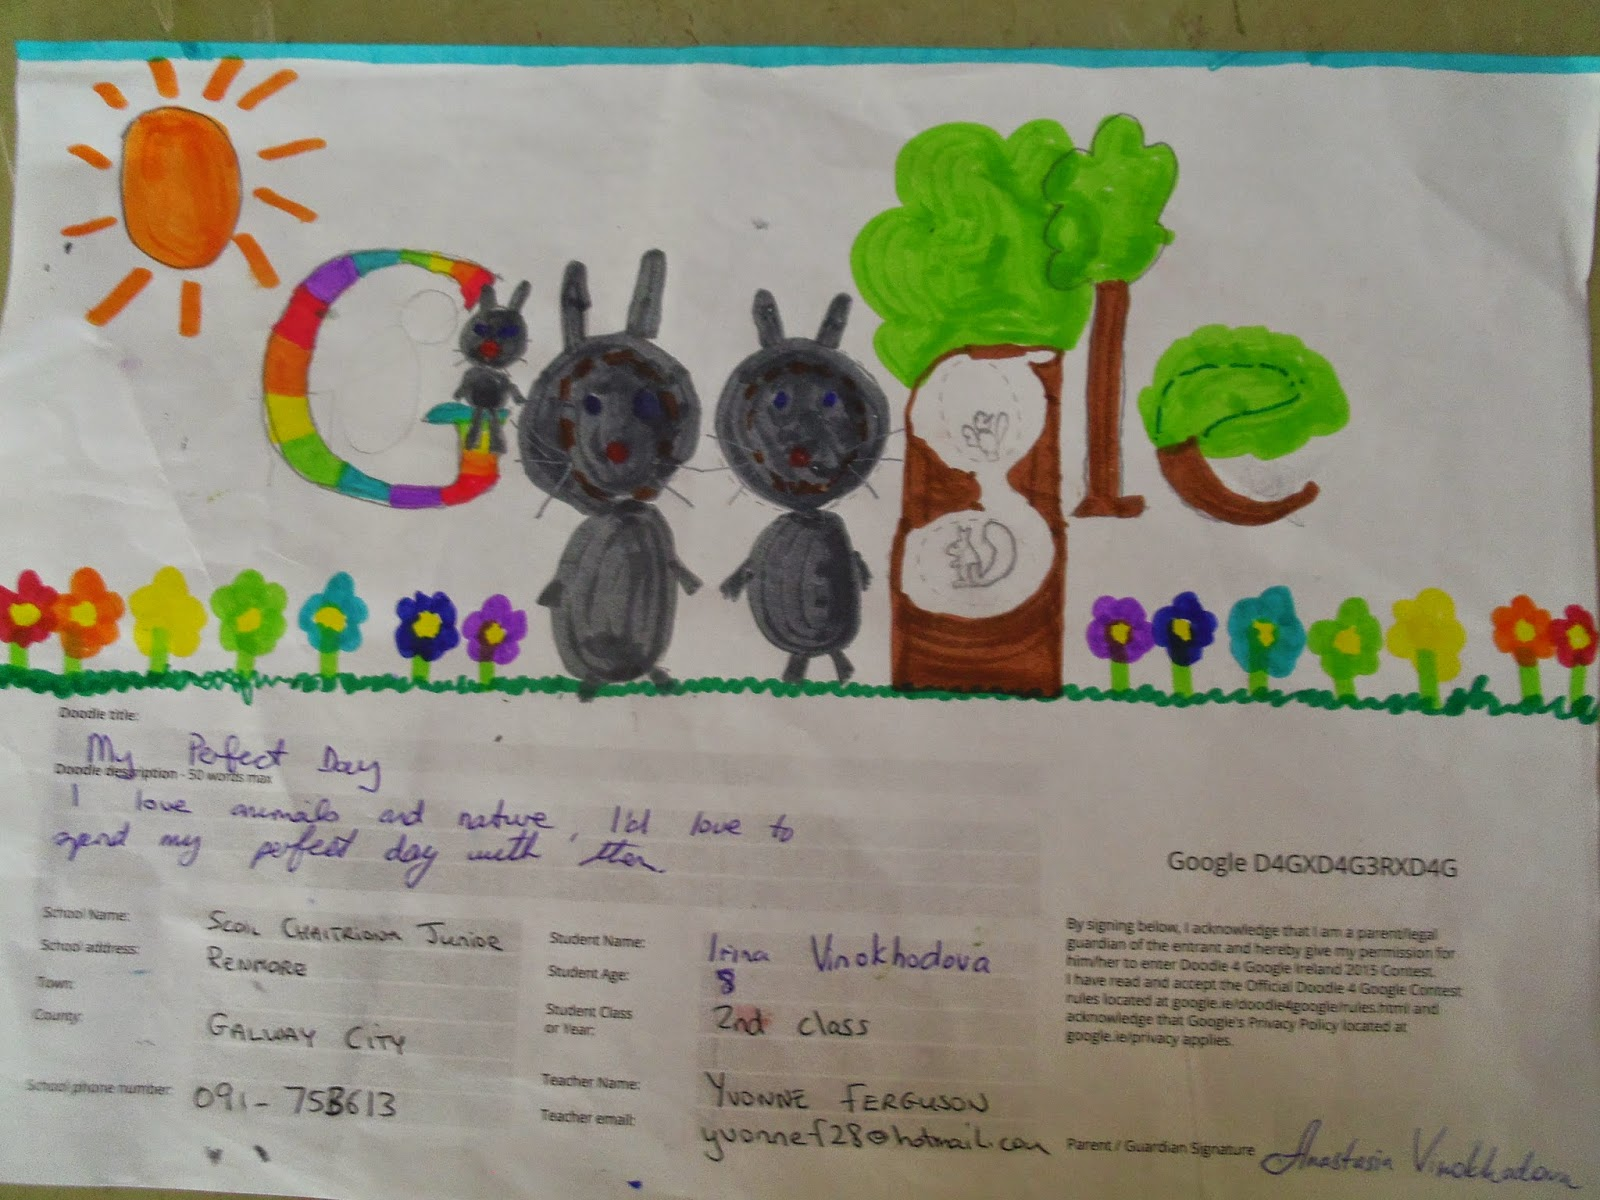 Art, Music and Drama Page: Doodle 4 Google competition